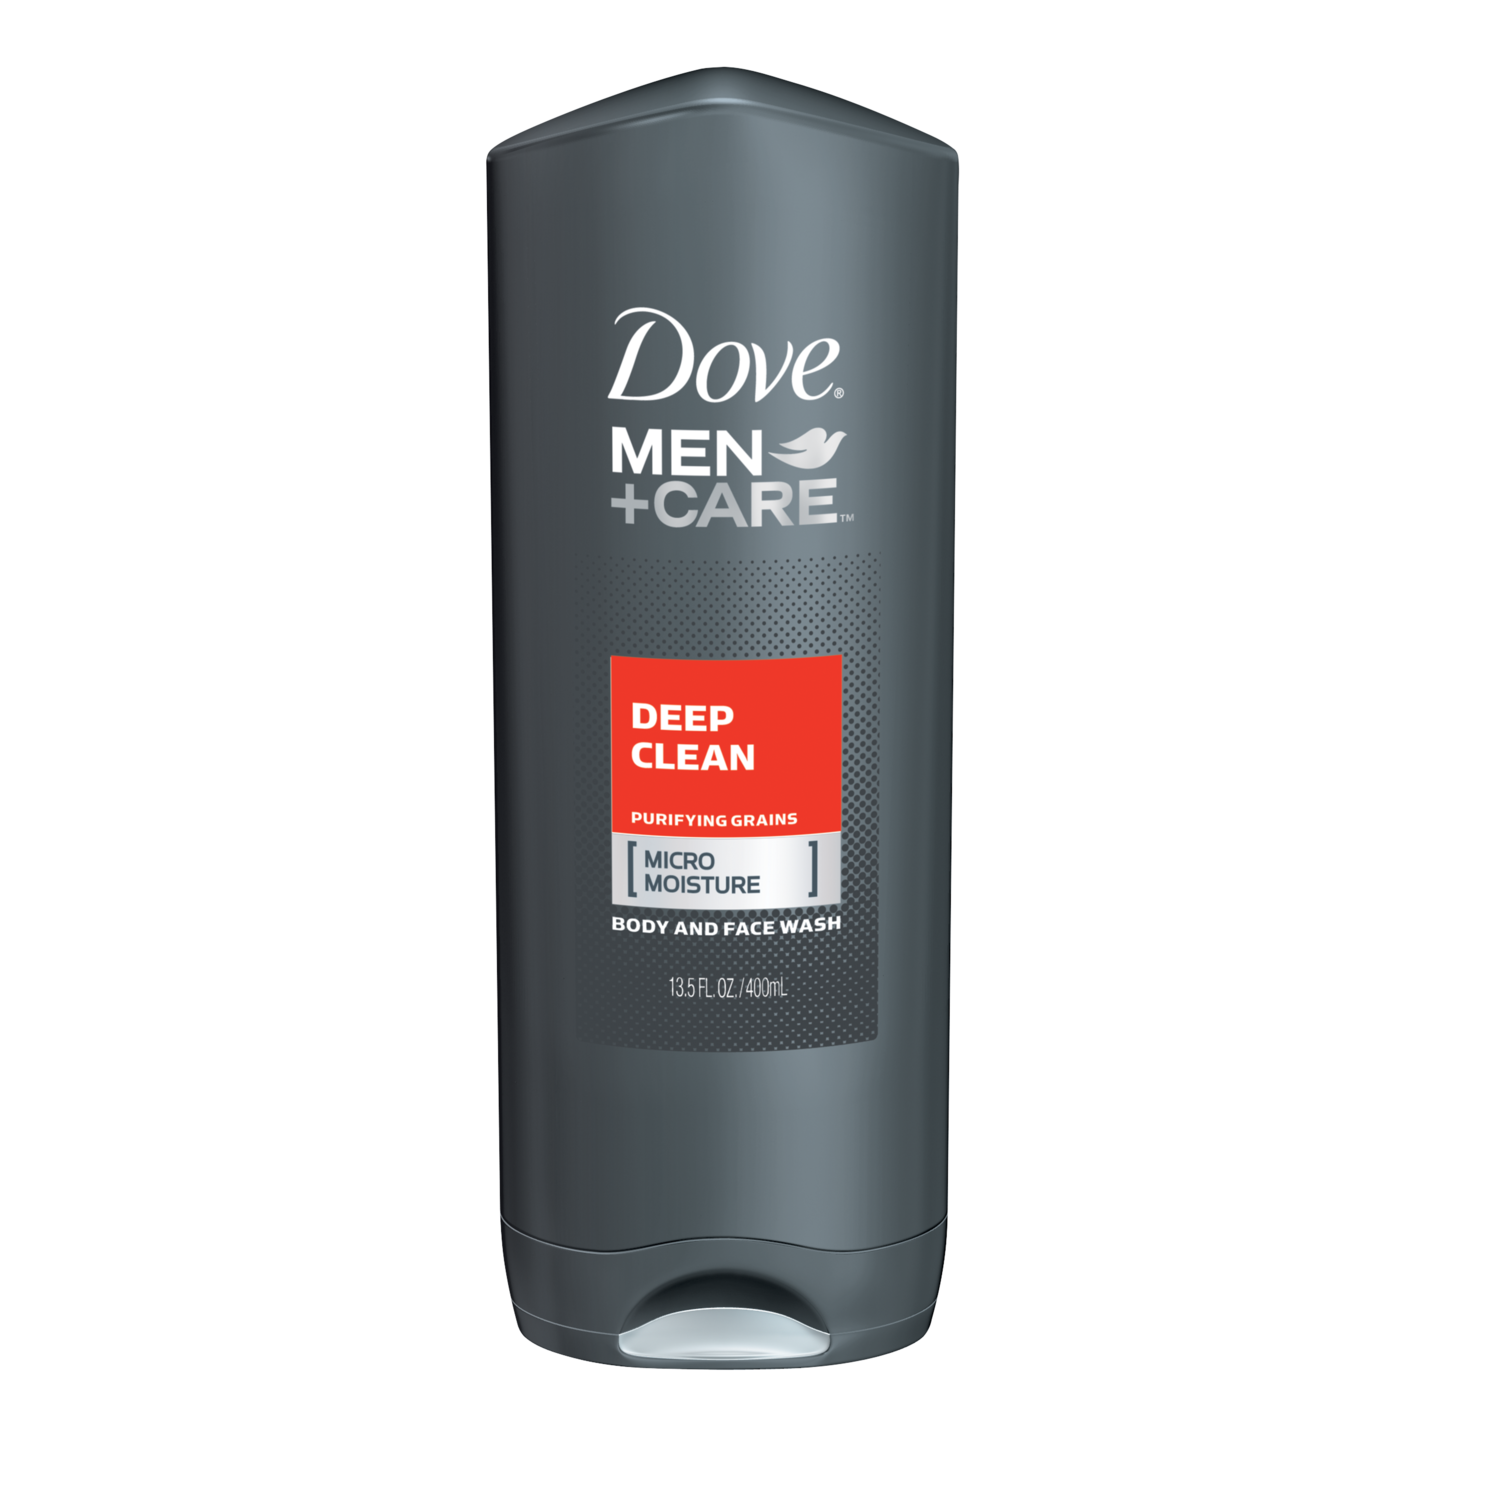 Dove Men+Care Deep Clean Body and Face Wash